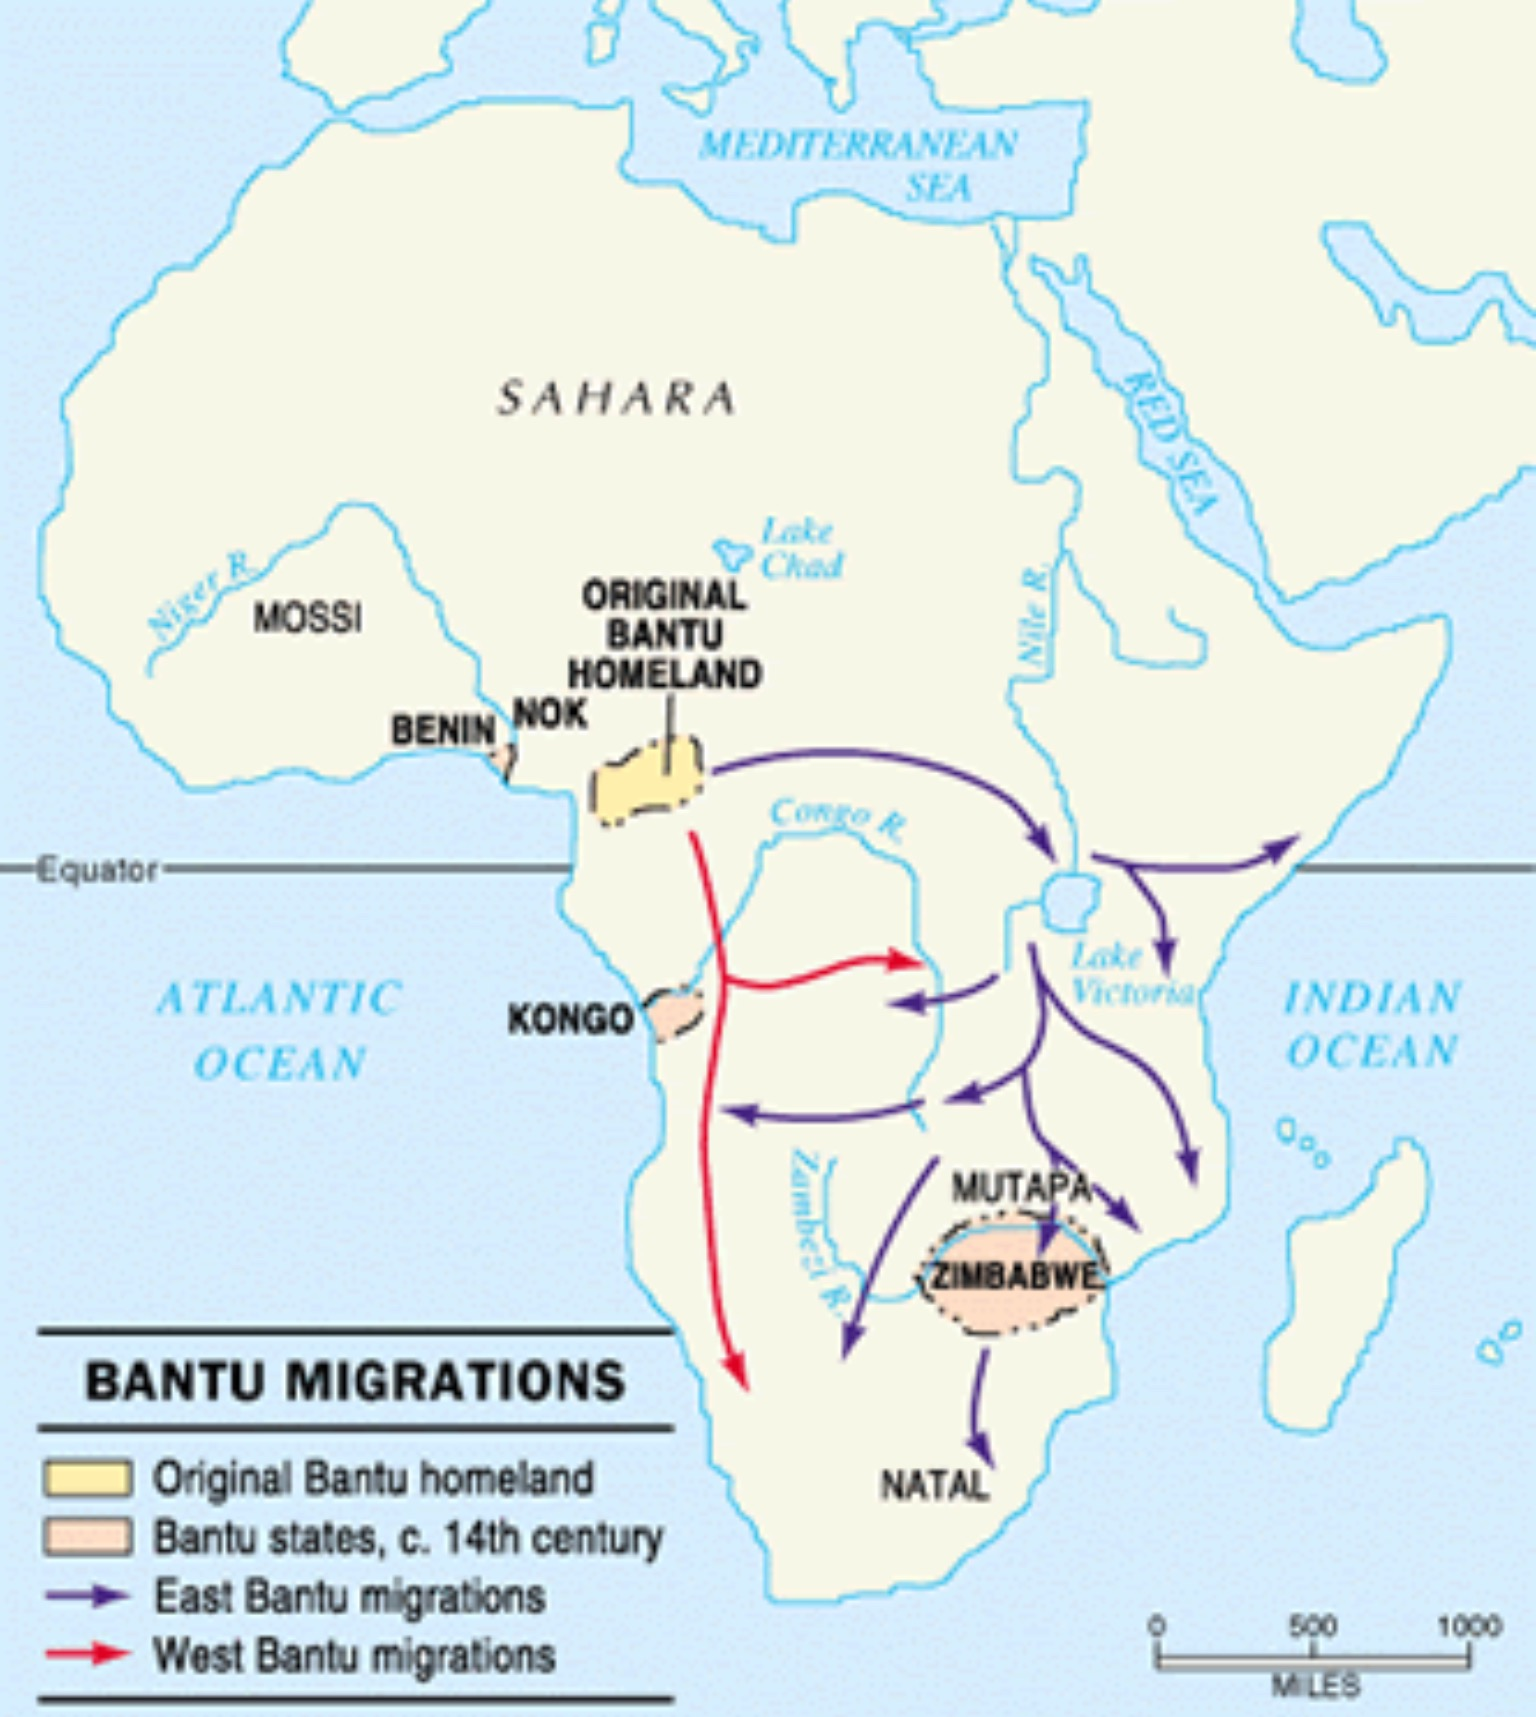 bantu migration View bantu migration presentations online, safely and virus-free many are downloadable learn new and interesting things get ideas for your own presentations share.